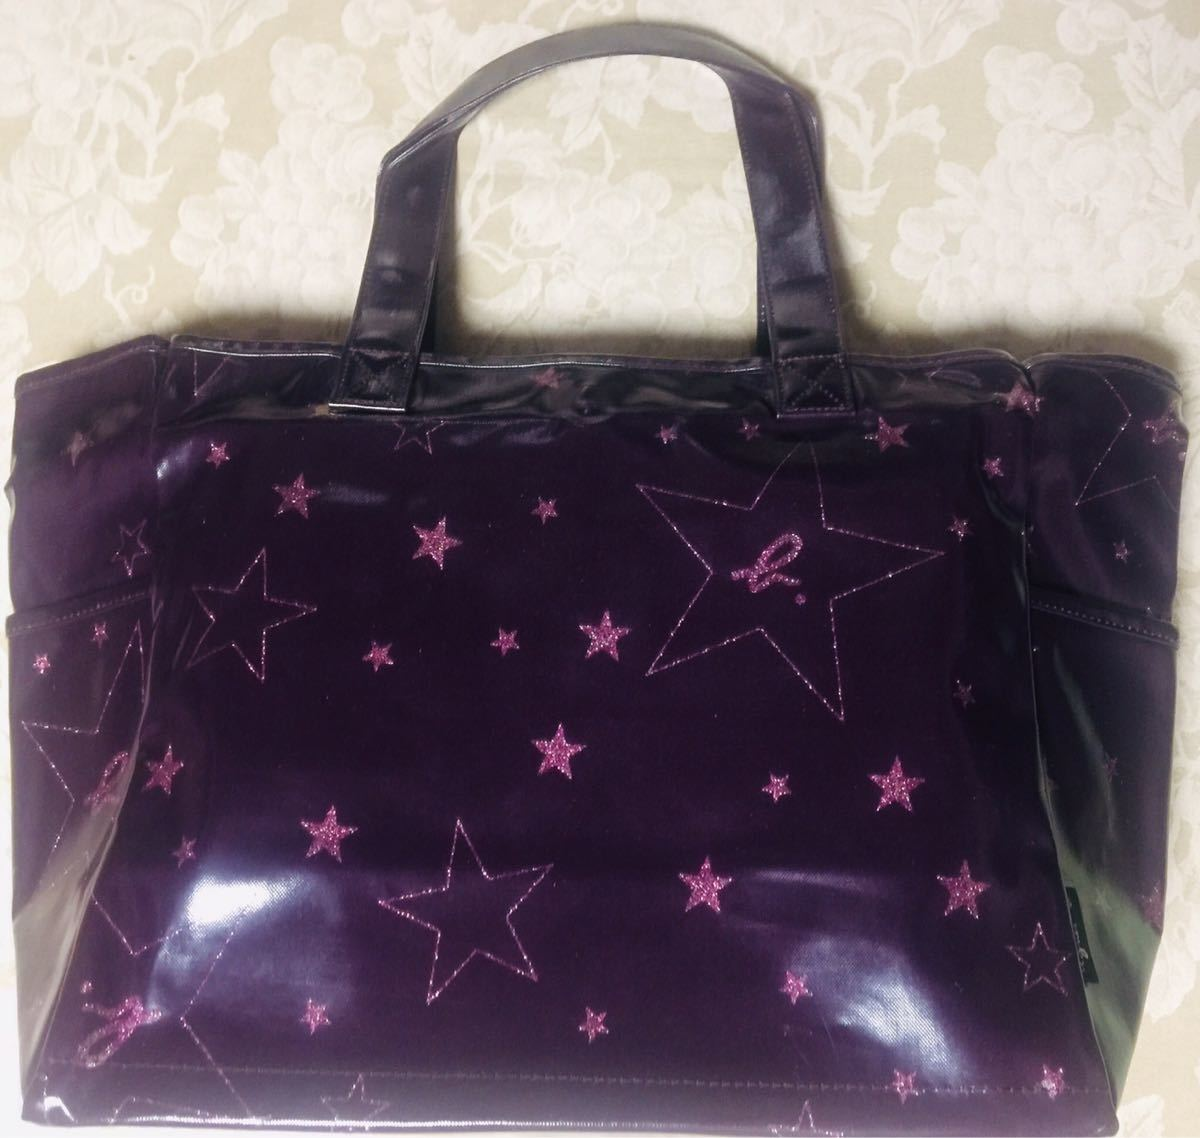 Agnes b tote bag (purple)